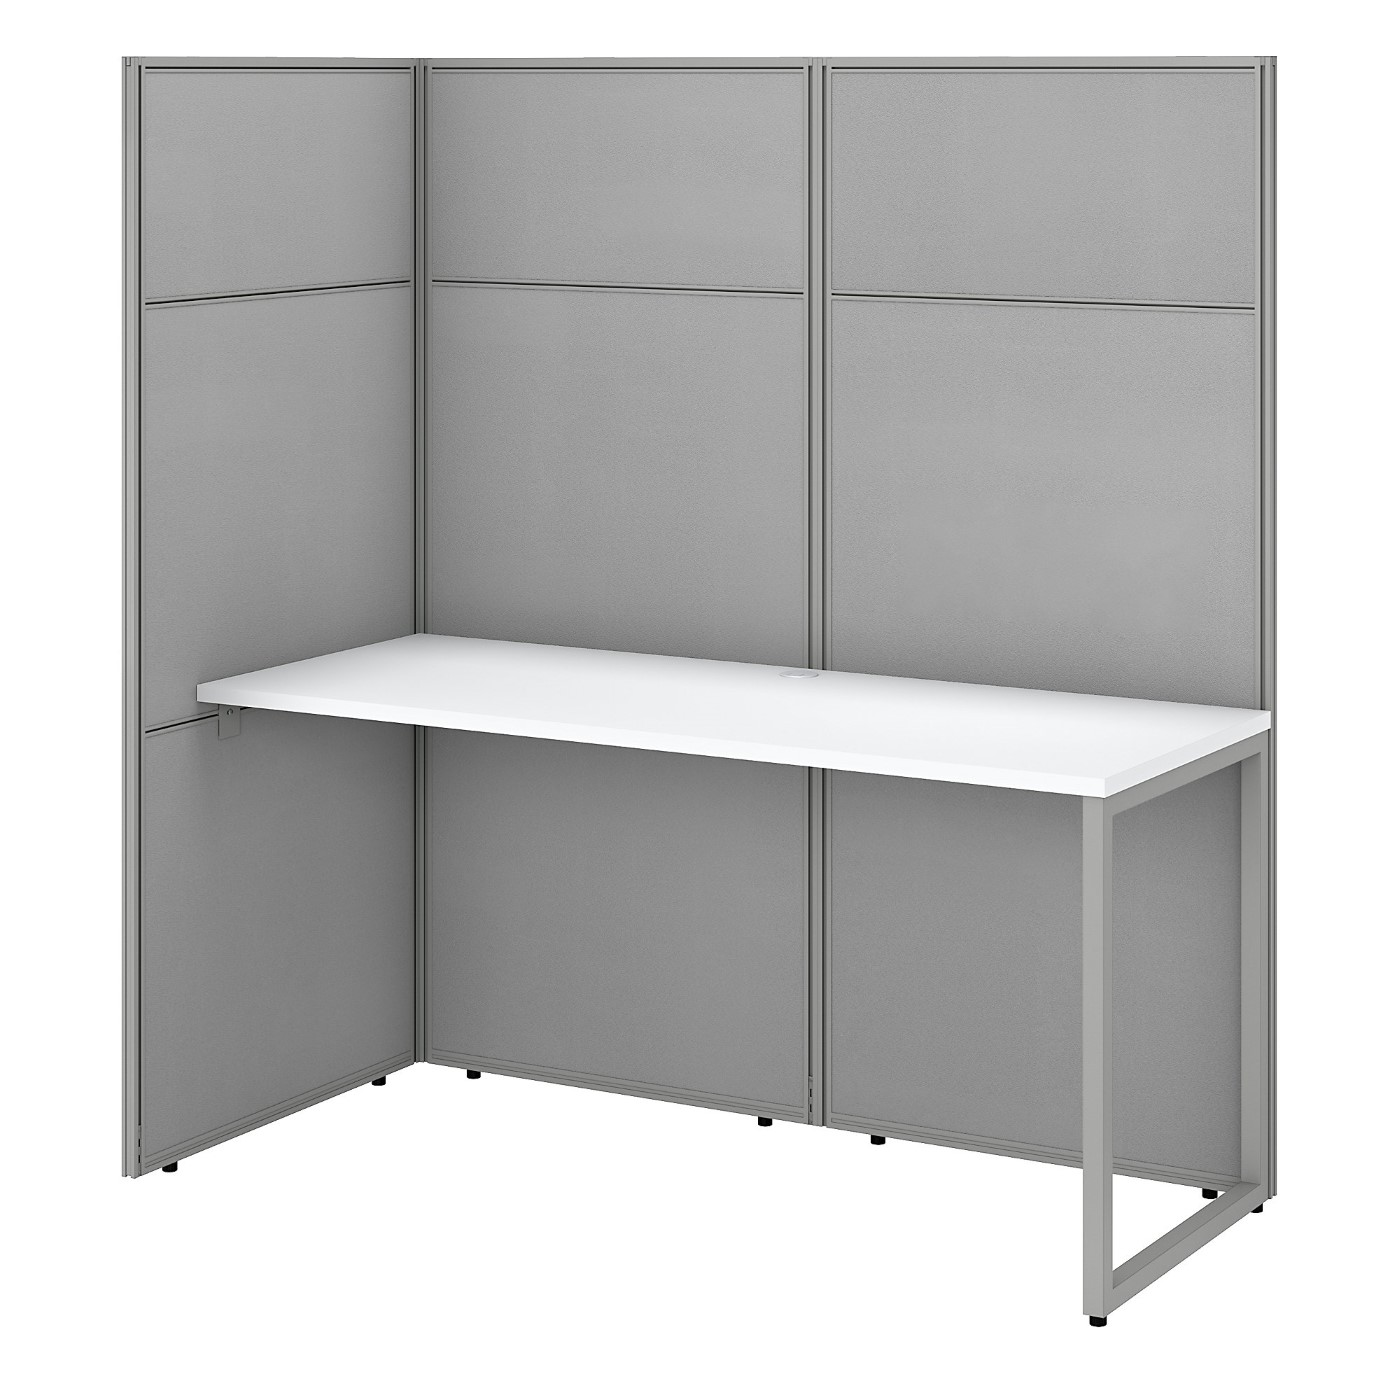 BUSH BUSINESS FURNITURE EASY OFFICE 60W CUBICLE DESK WORKSTATION WITH 66H OPEN PANELS. FREE SHIPPING SALE DEDUCT 10% MORE ENTER '10percent' IN COUPON CODE BOX WHILE CHECKING OUT. ENDS 5-31-20.